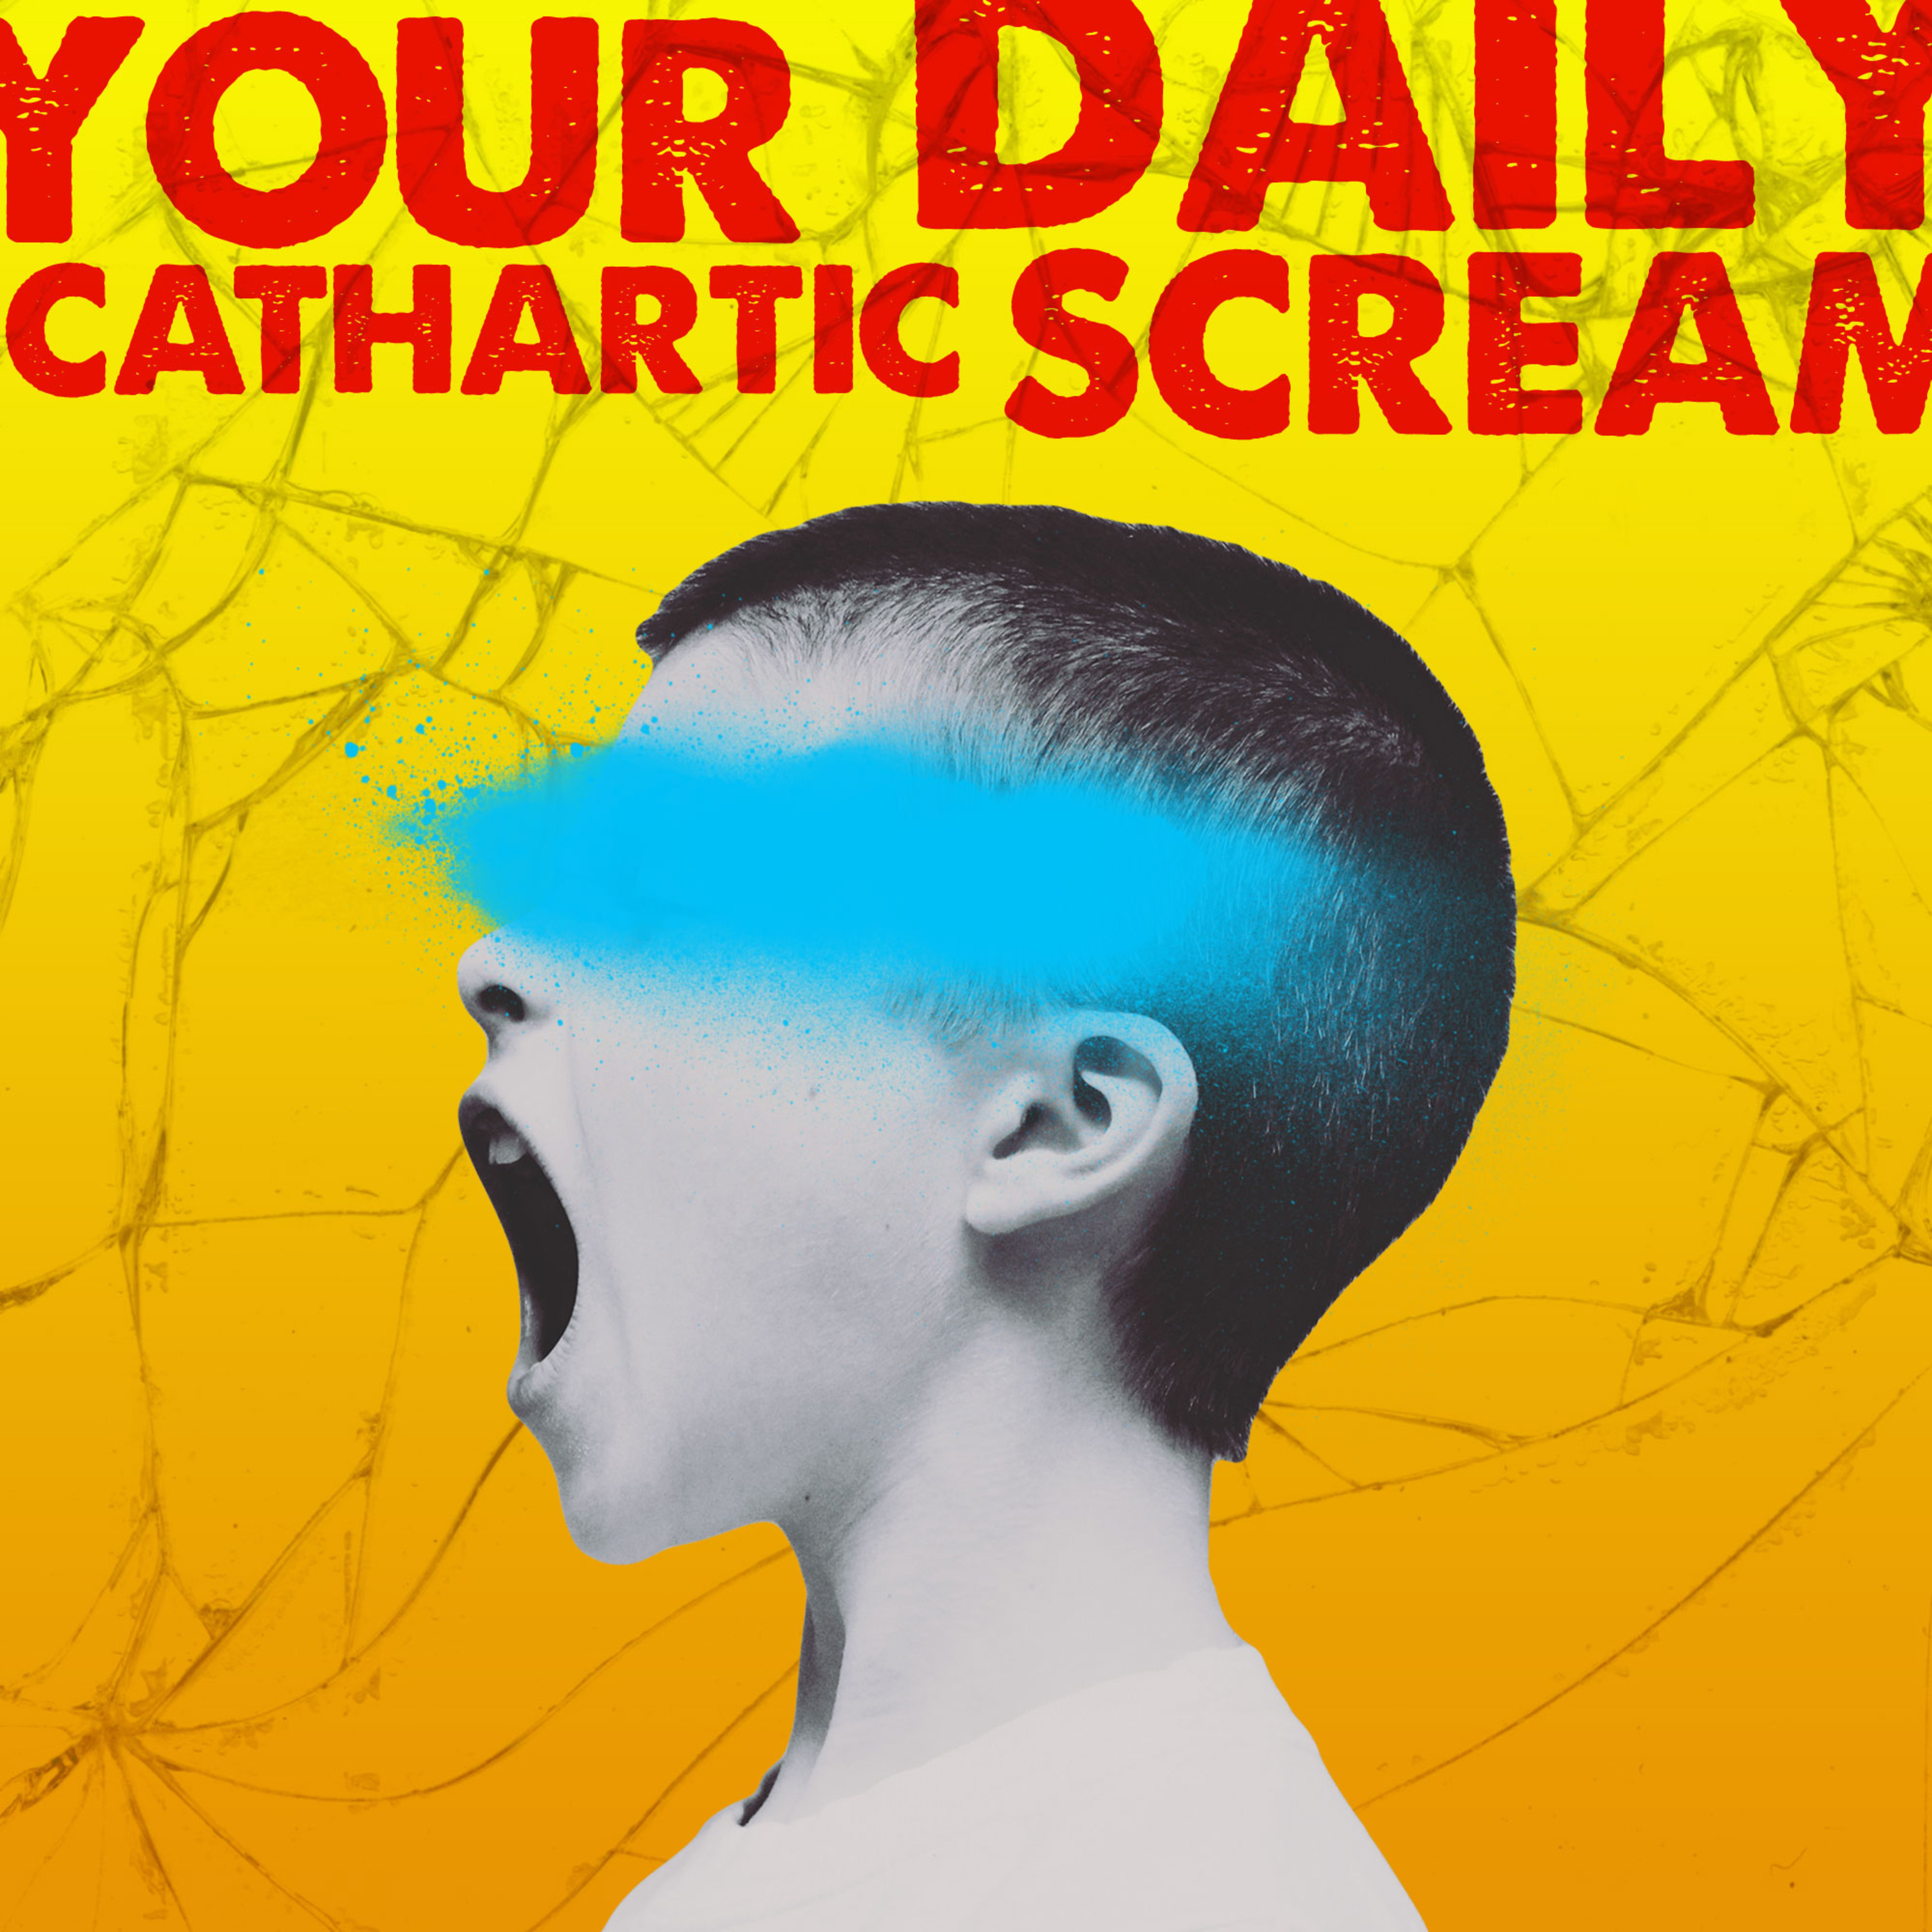 Coming Soon: Your Daily Cathartic Scream!